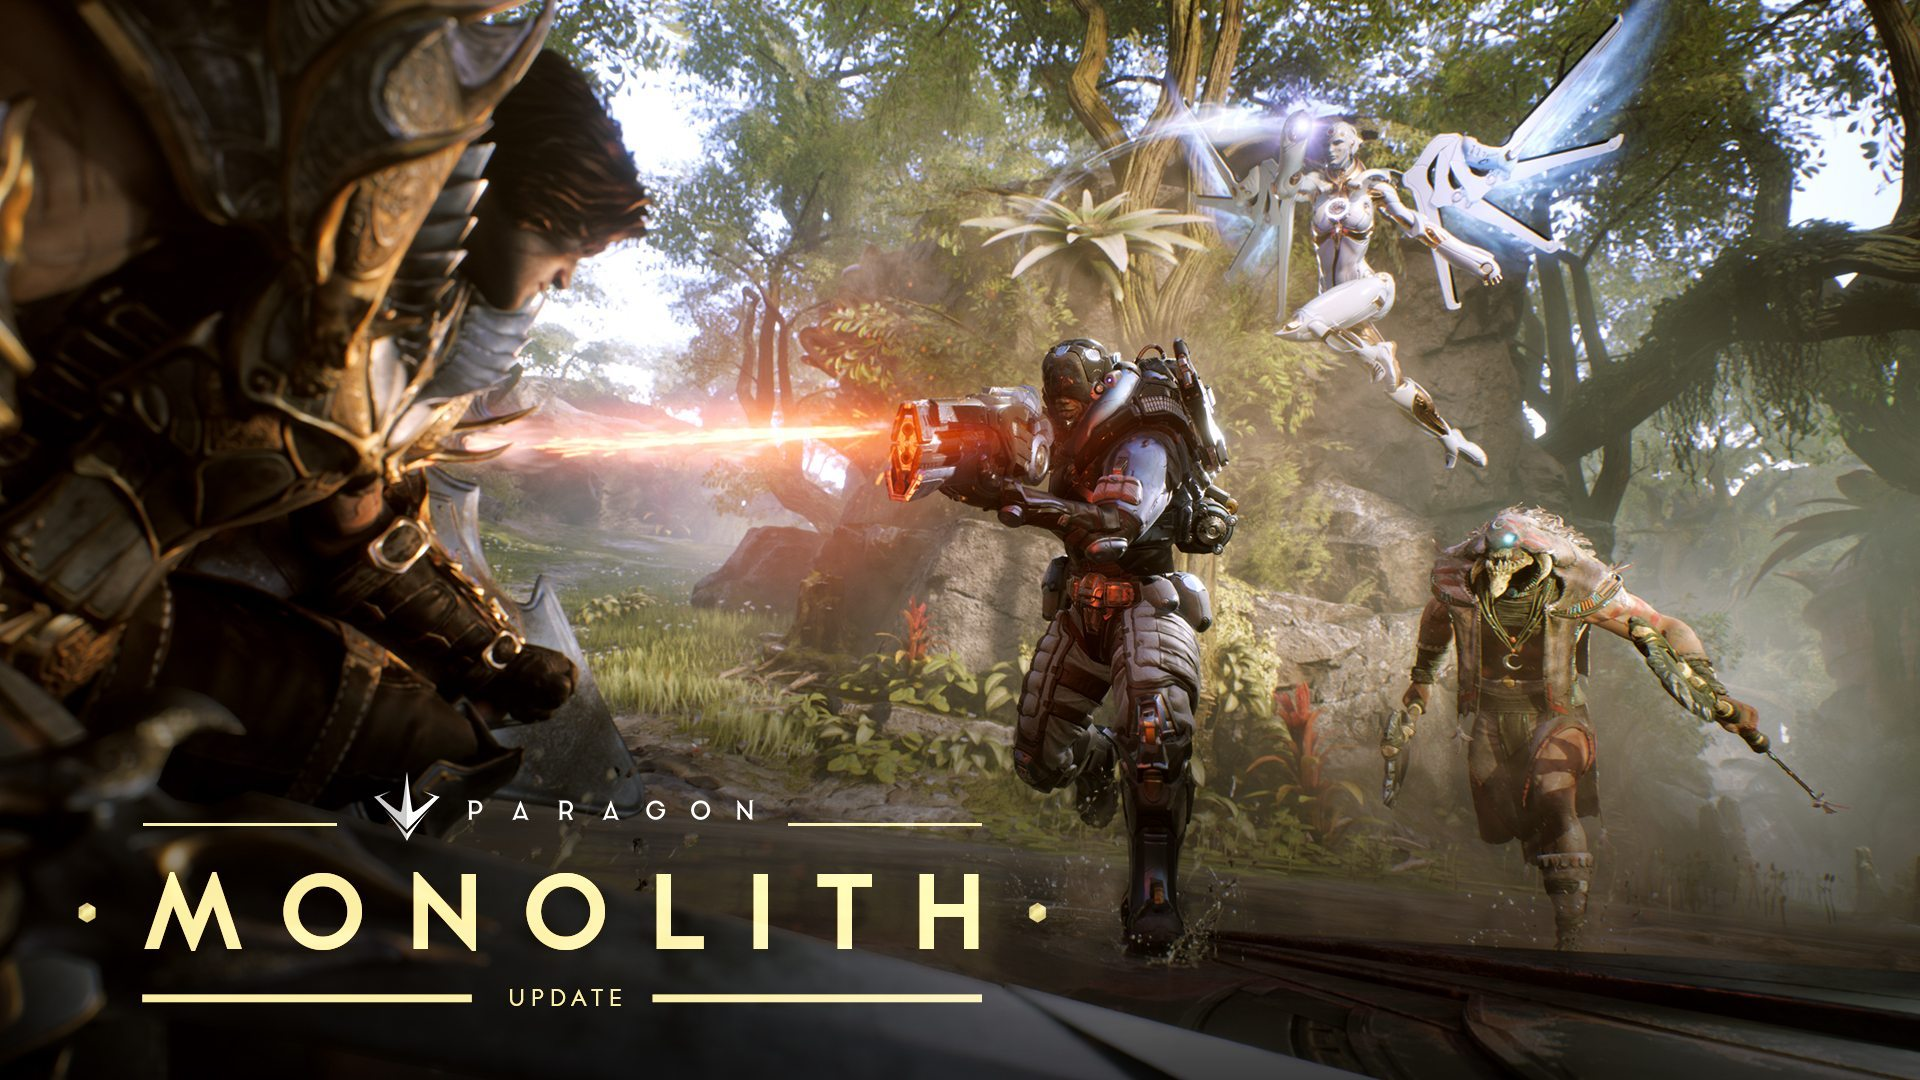 Major New Paragon Monolith Update Now Available To Download